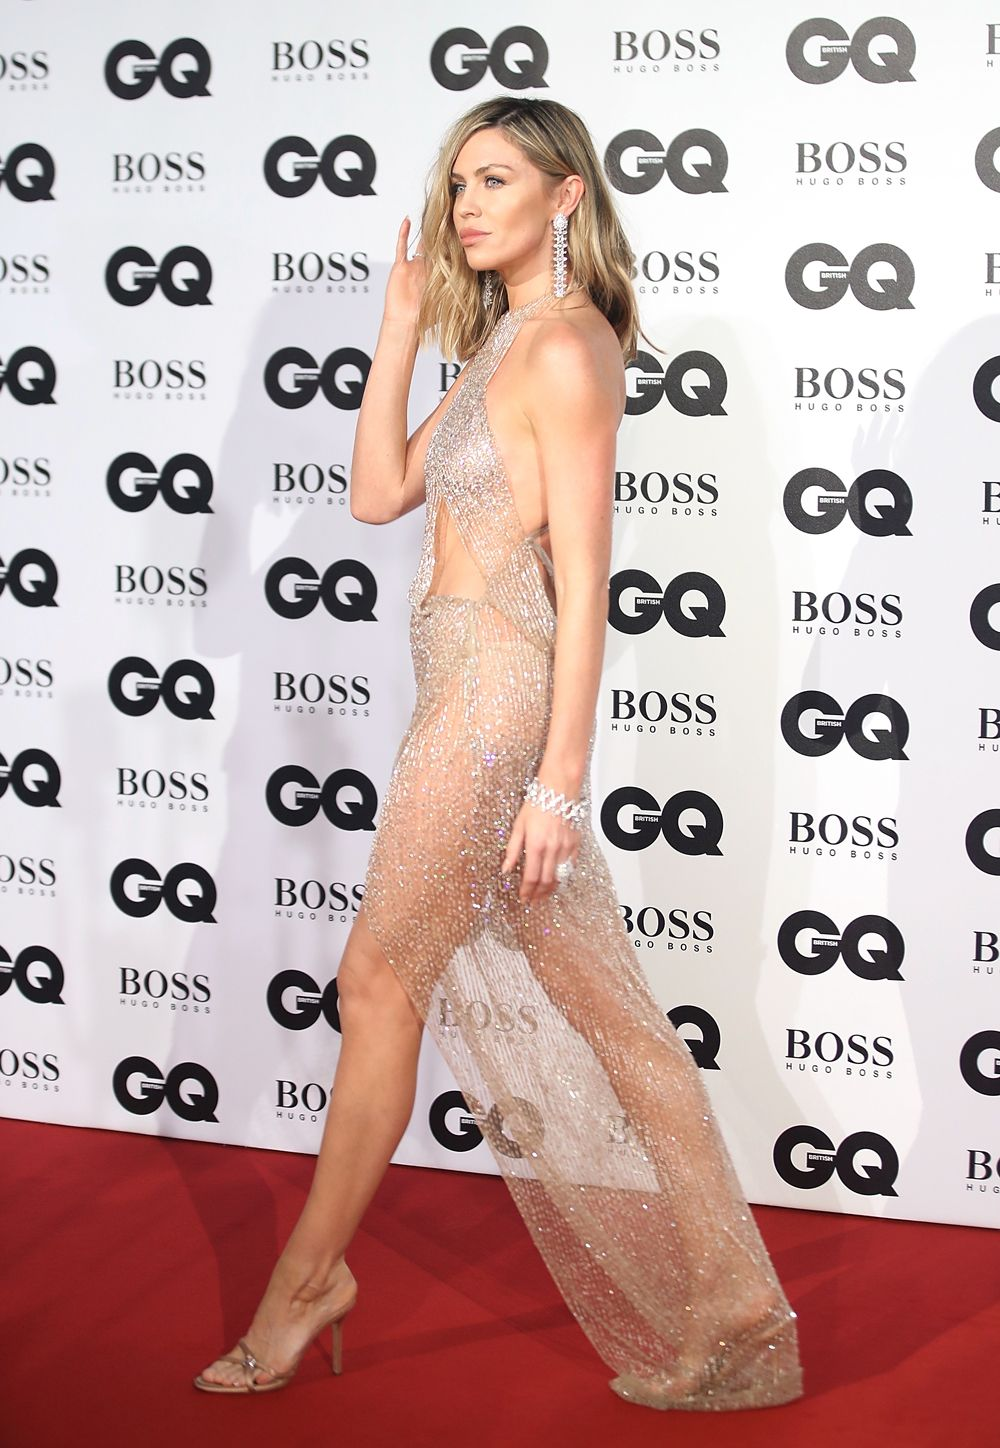 Gq Awards 2018 Naked Celebrity Dresses Abbey Clancy